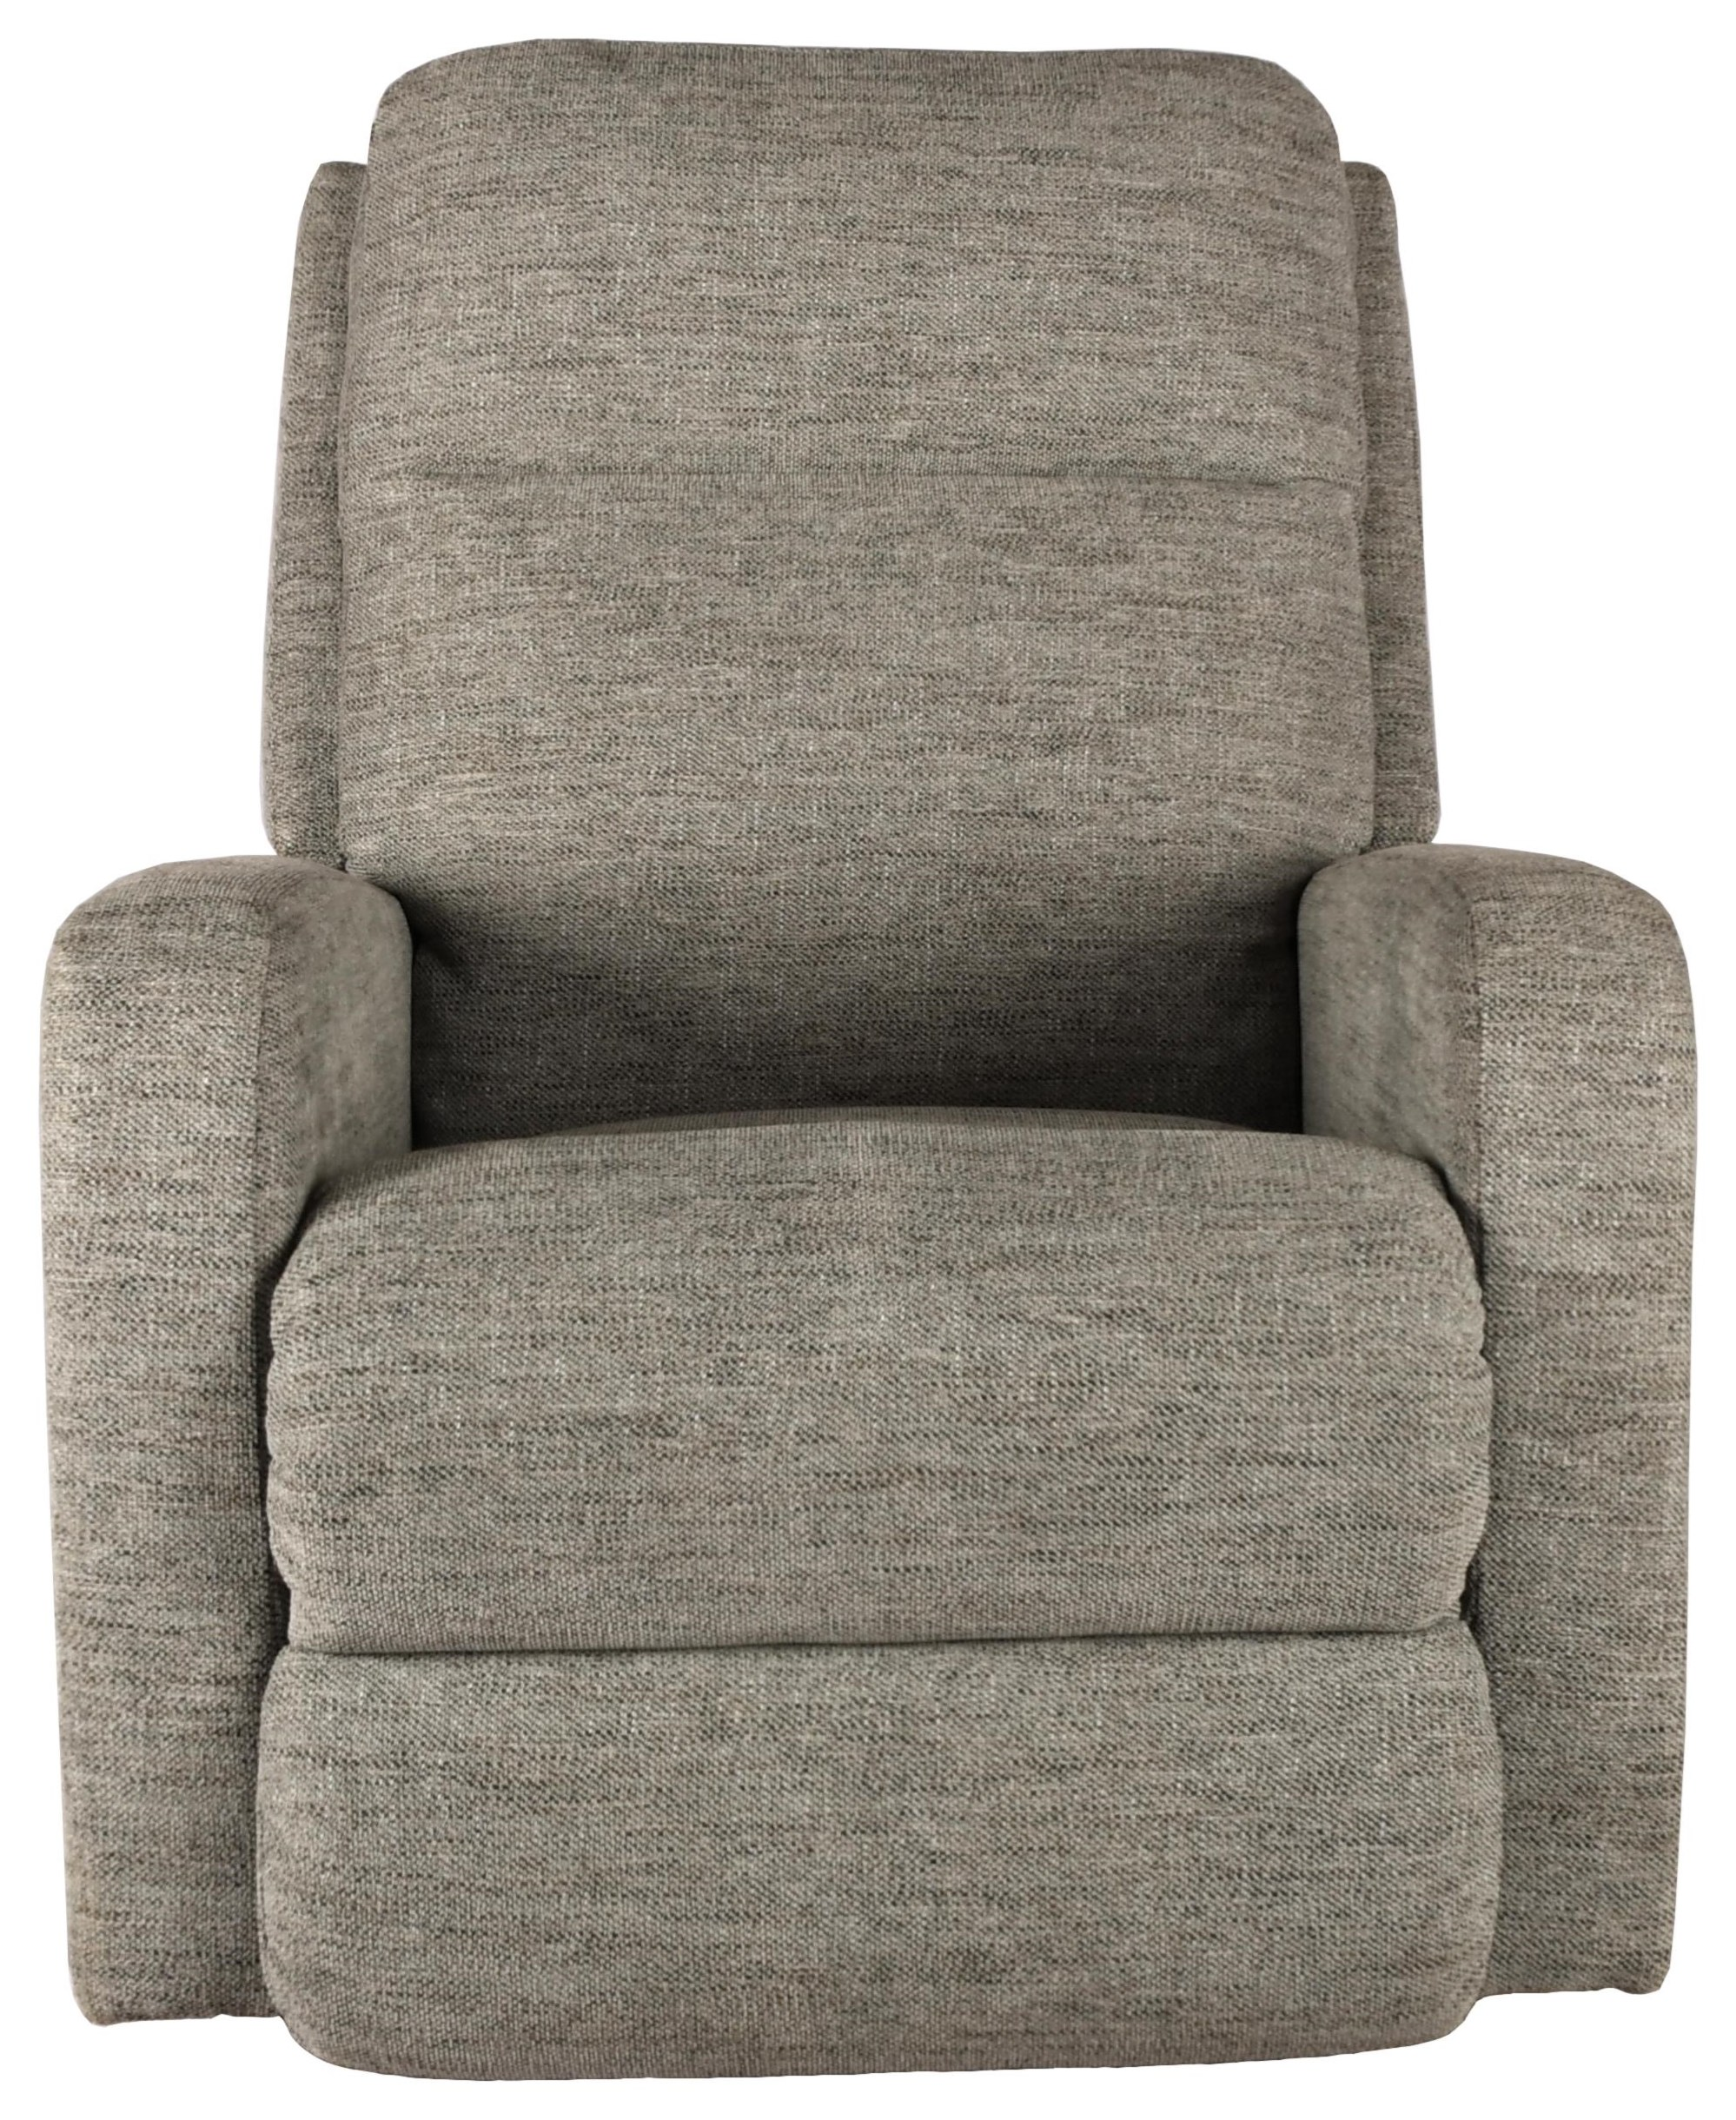 Finley Power Wall Recliner by La-Z-Boy at Bennett's Furniture and Mattresses